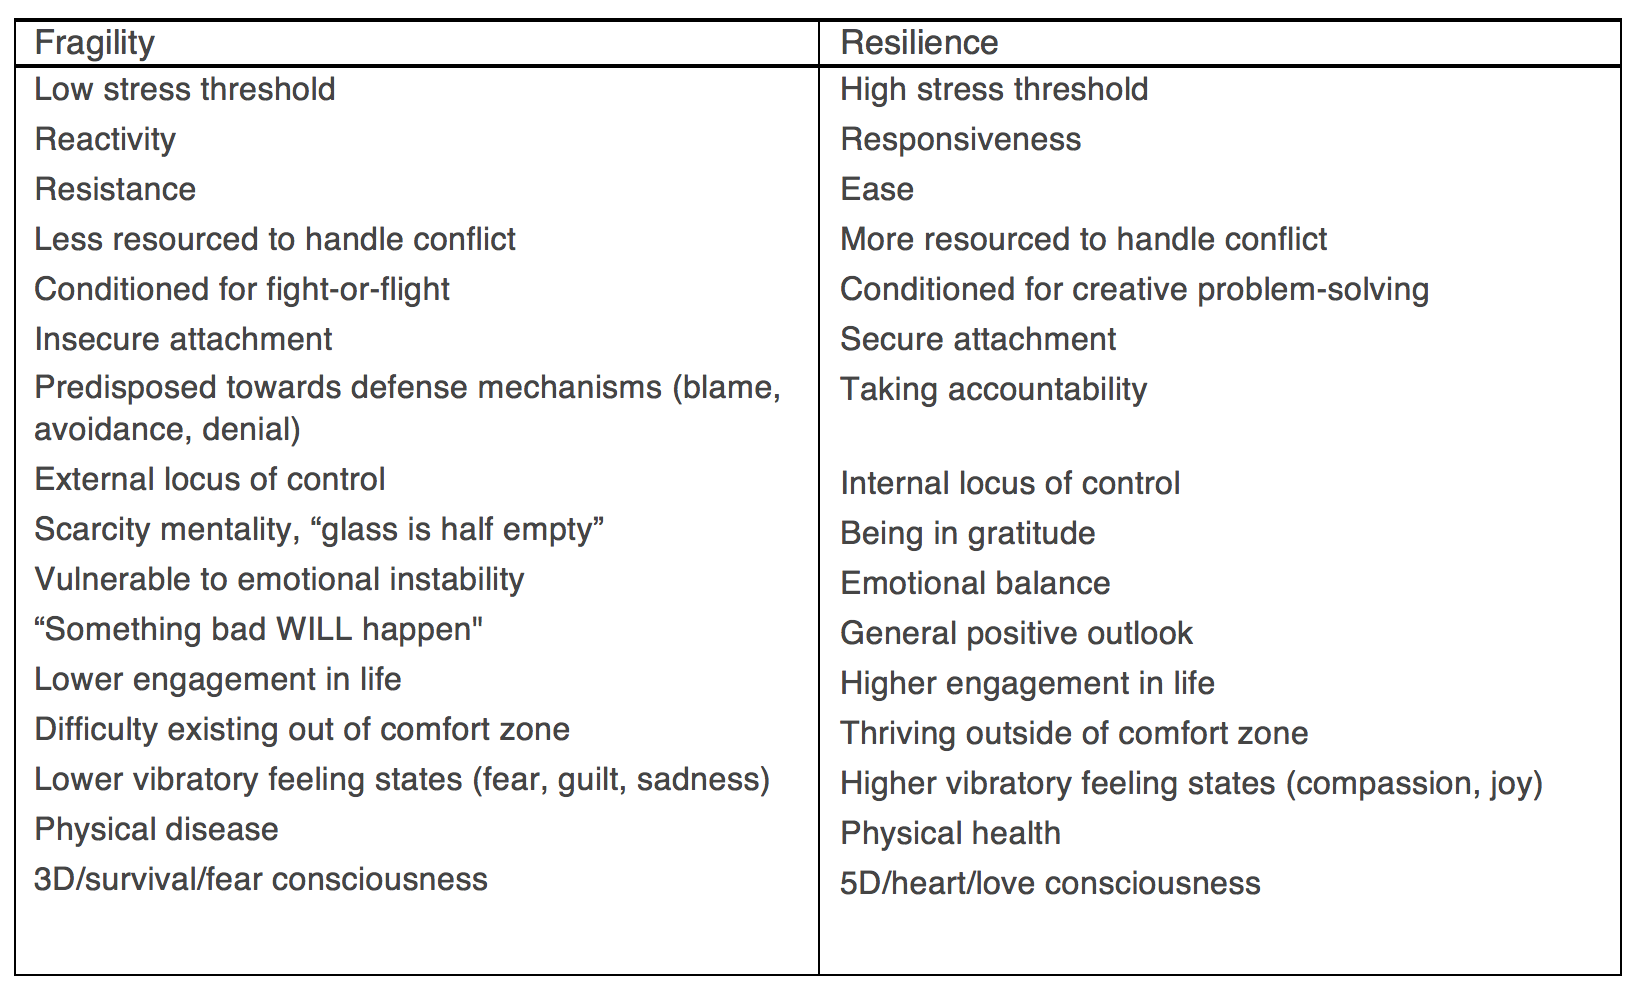 fragility < Resilience chart.png